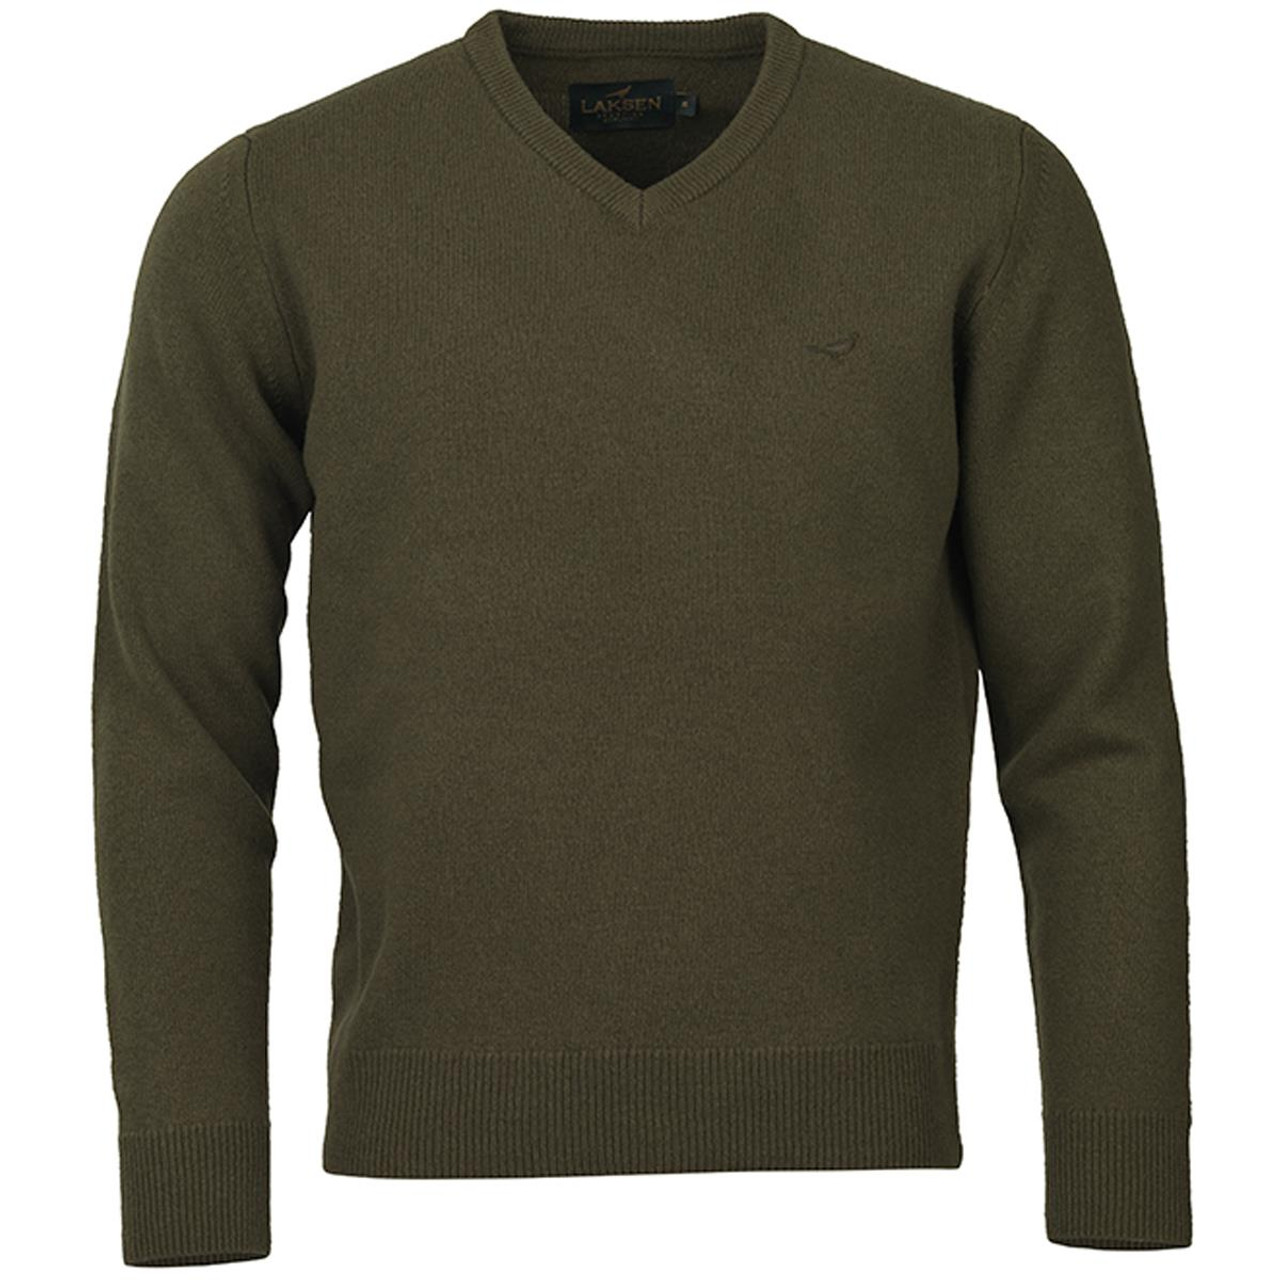 Jade Laksen Mens Johnston V Neck Knit